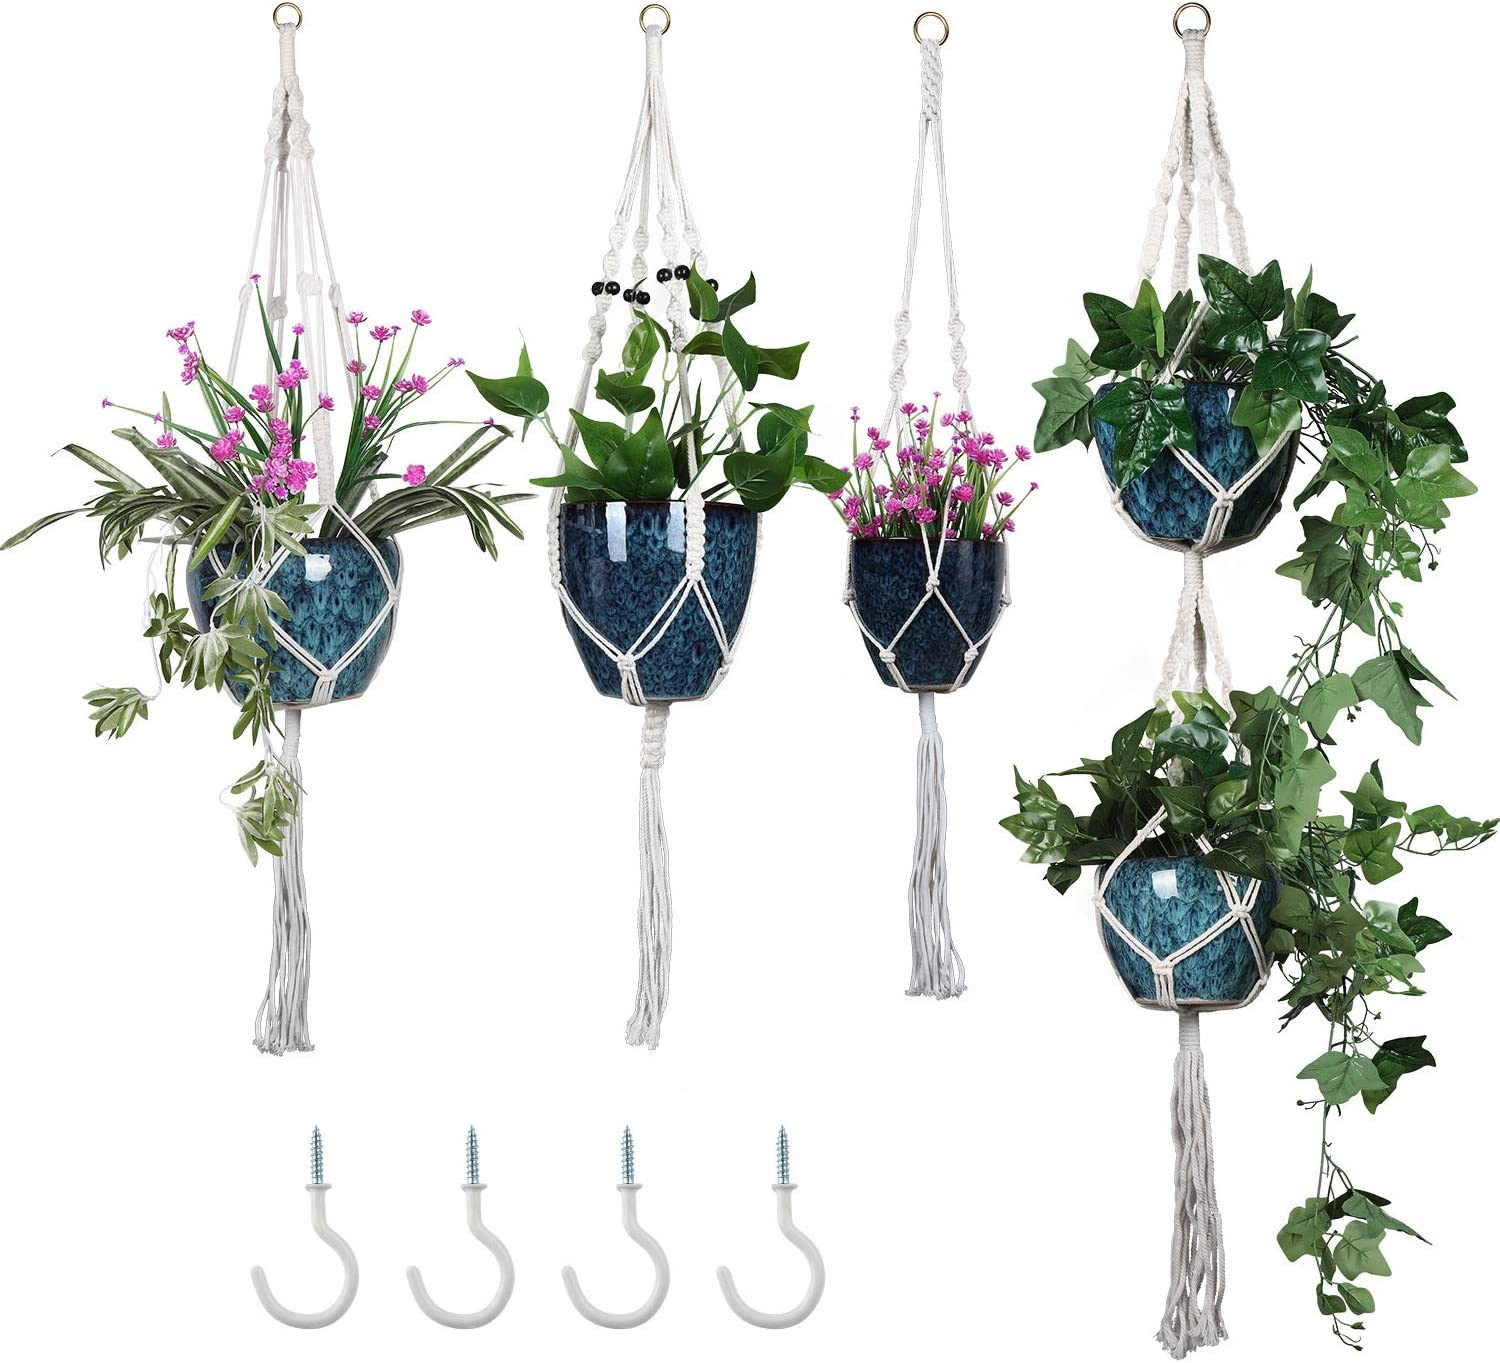 Macrame Plant Hangers – Hanging Plant with 4 Hooks, Metal Rings and Ancient Beads – 4 Pack in Different Designs Hanging Planters for Indoor Plants